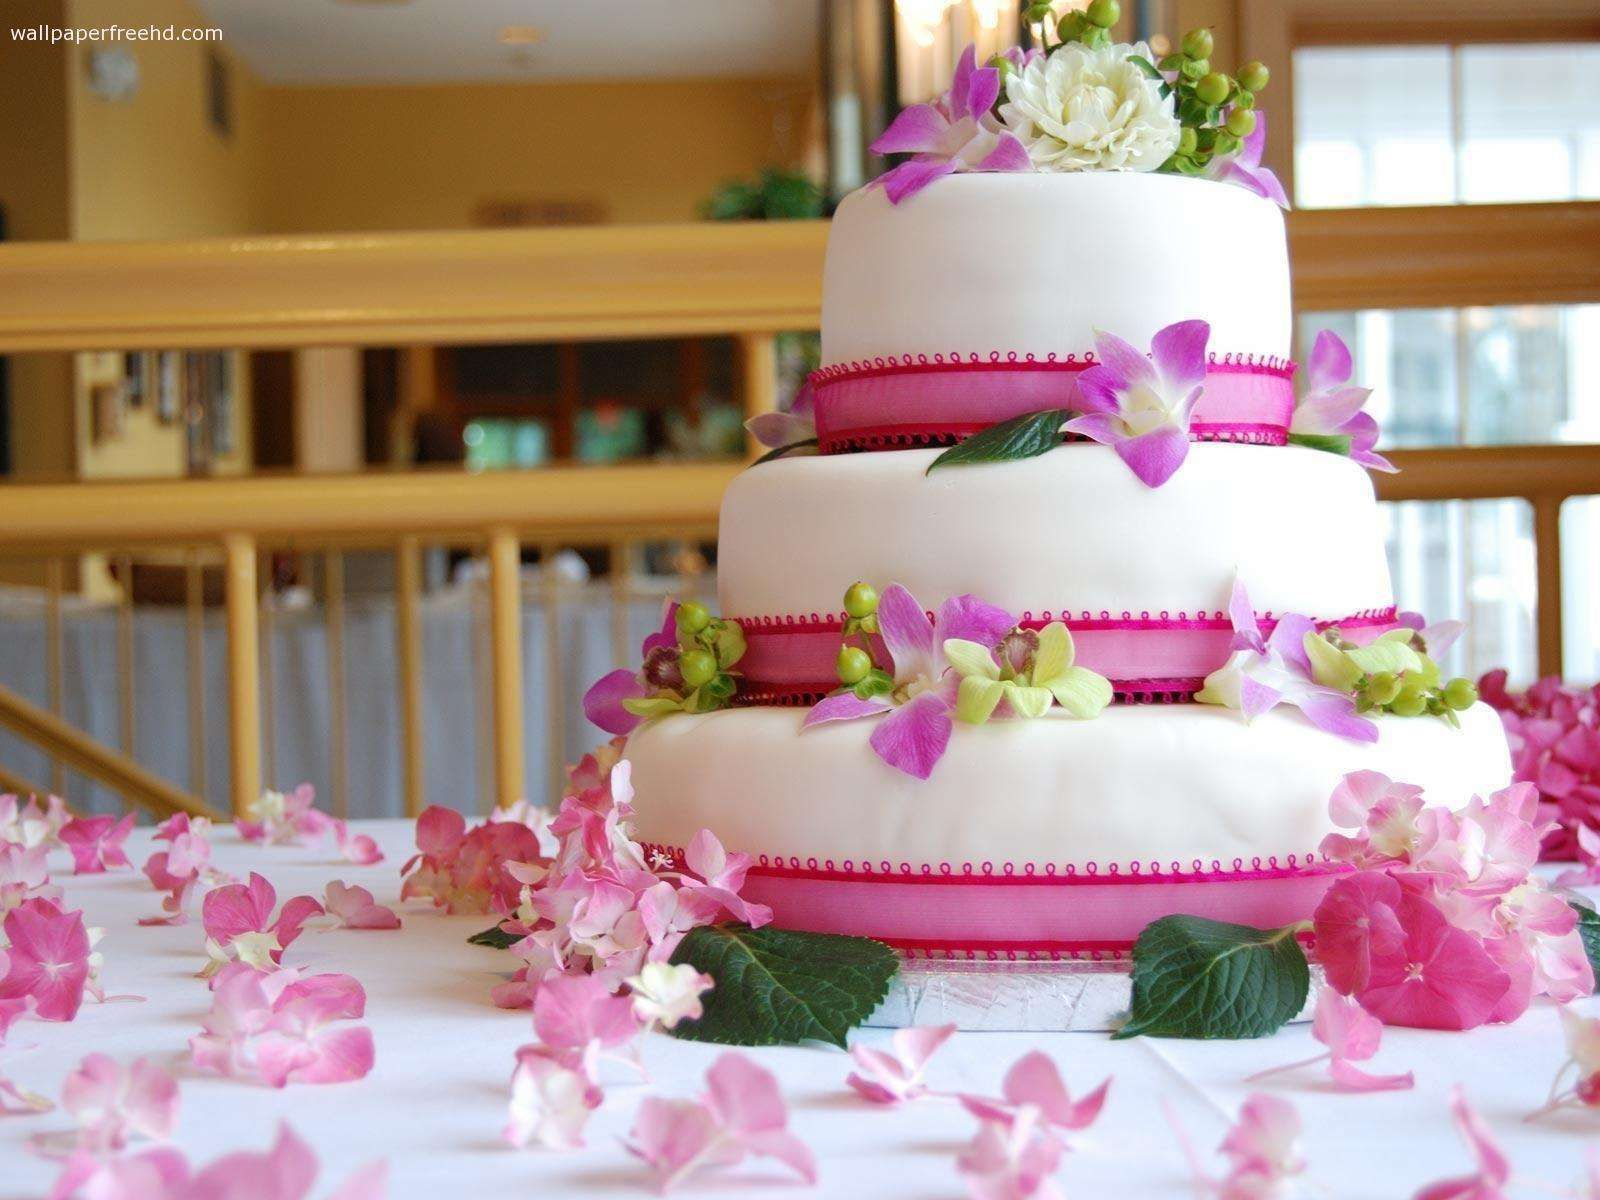 Cakes images wedding cake hd wallpaper and background photos - Pink Wedding Cakes 1080p Hd Pictures